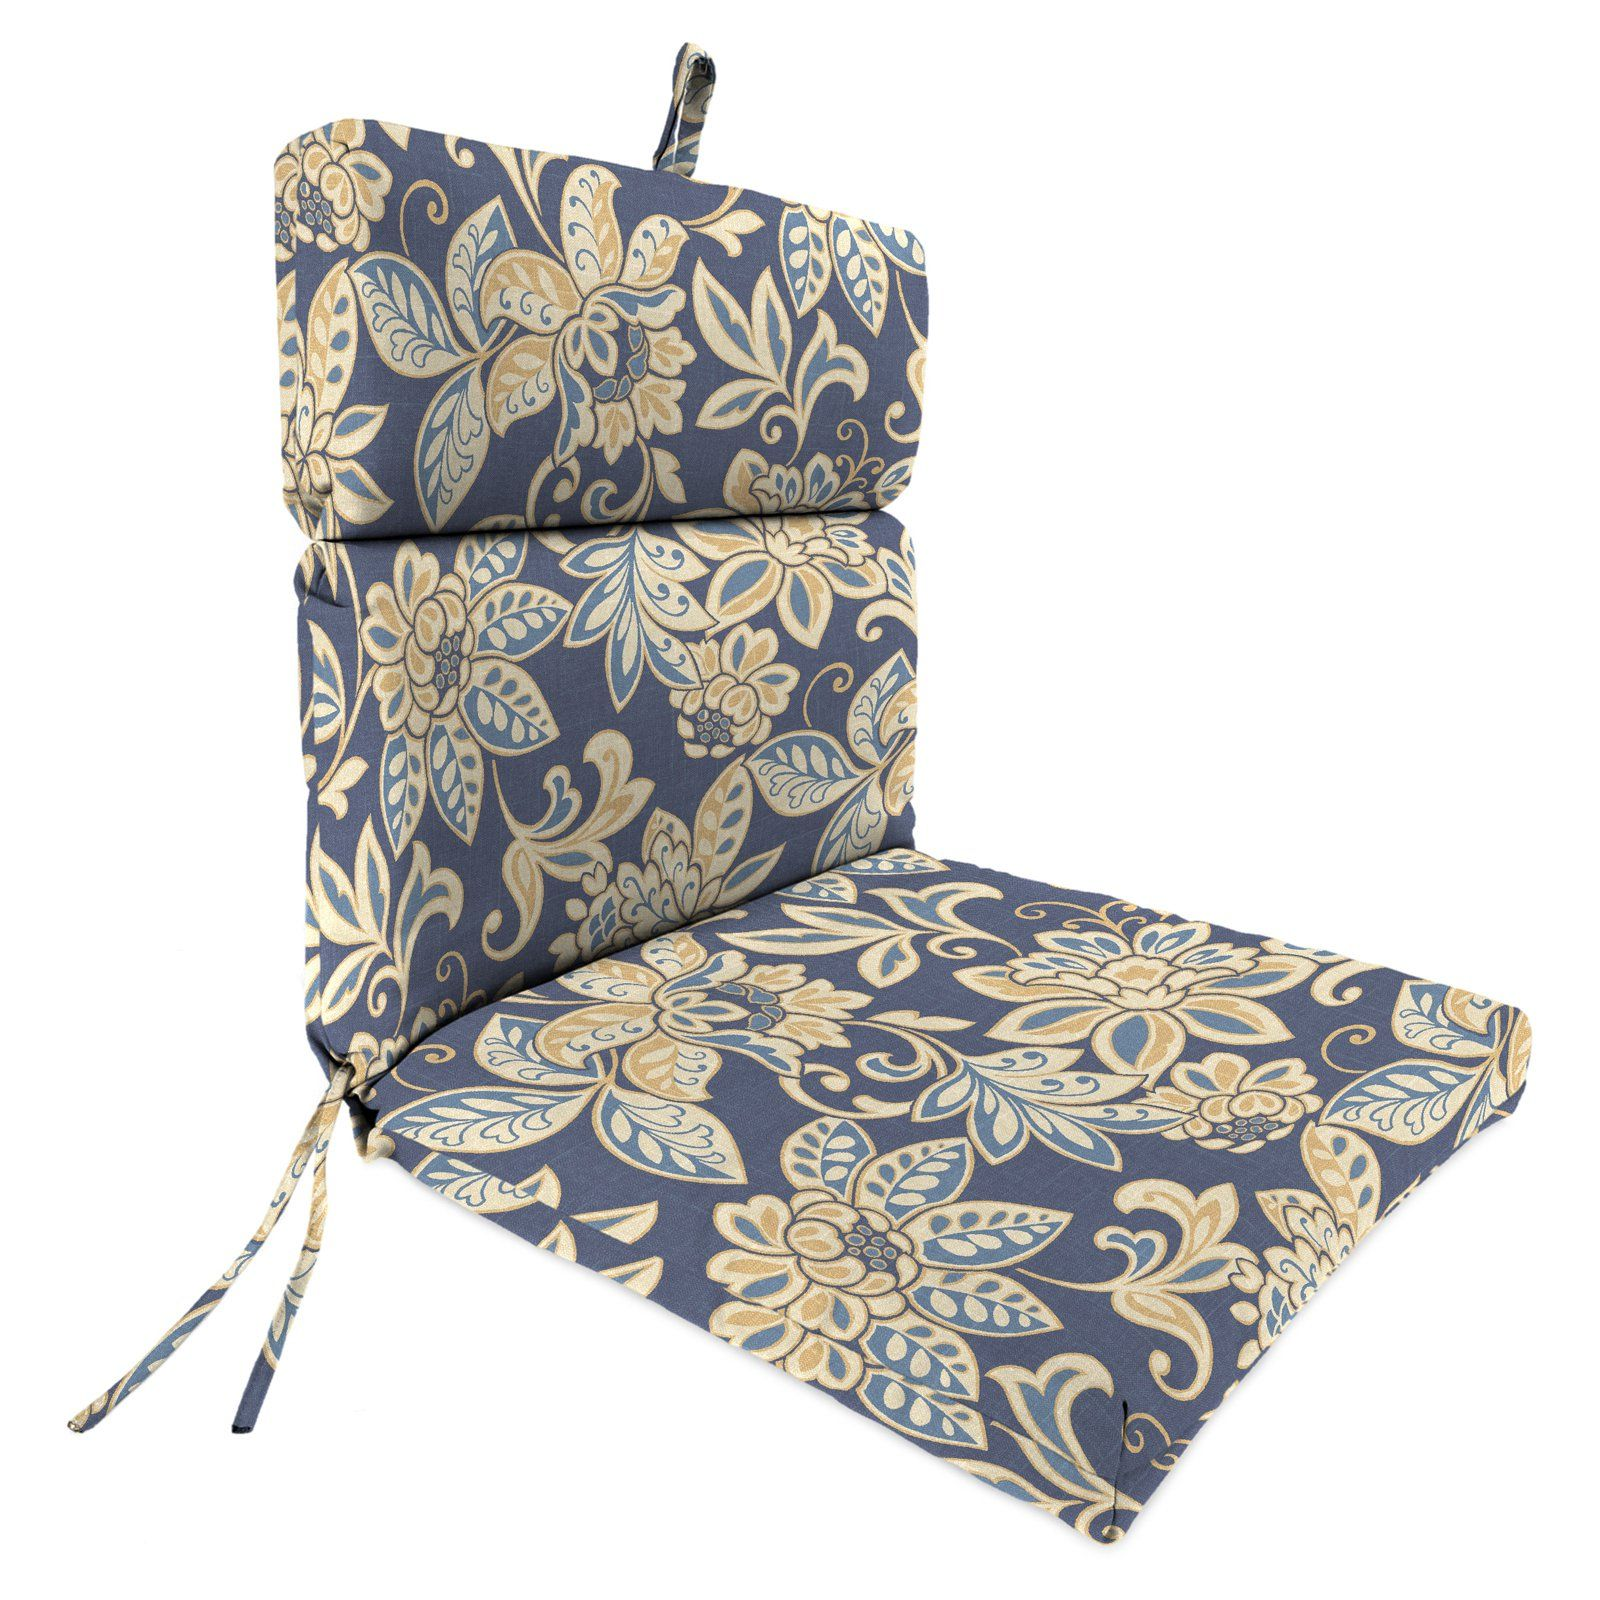 Jordan Manufacturing 44 X 22 In Outdoor Chair Cushion For The